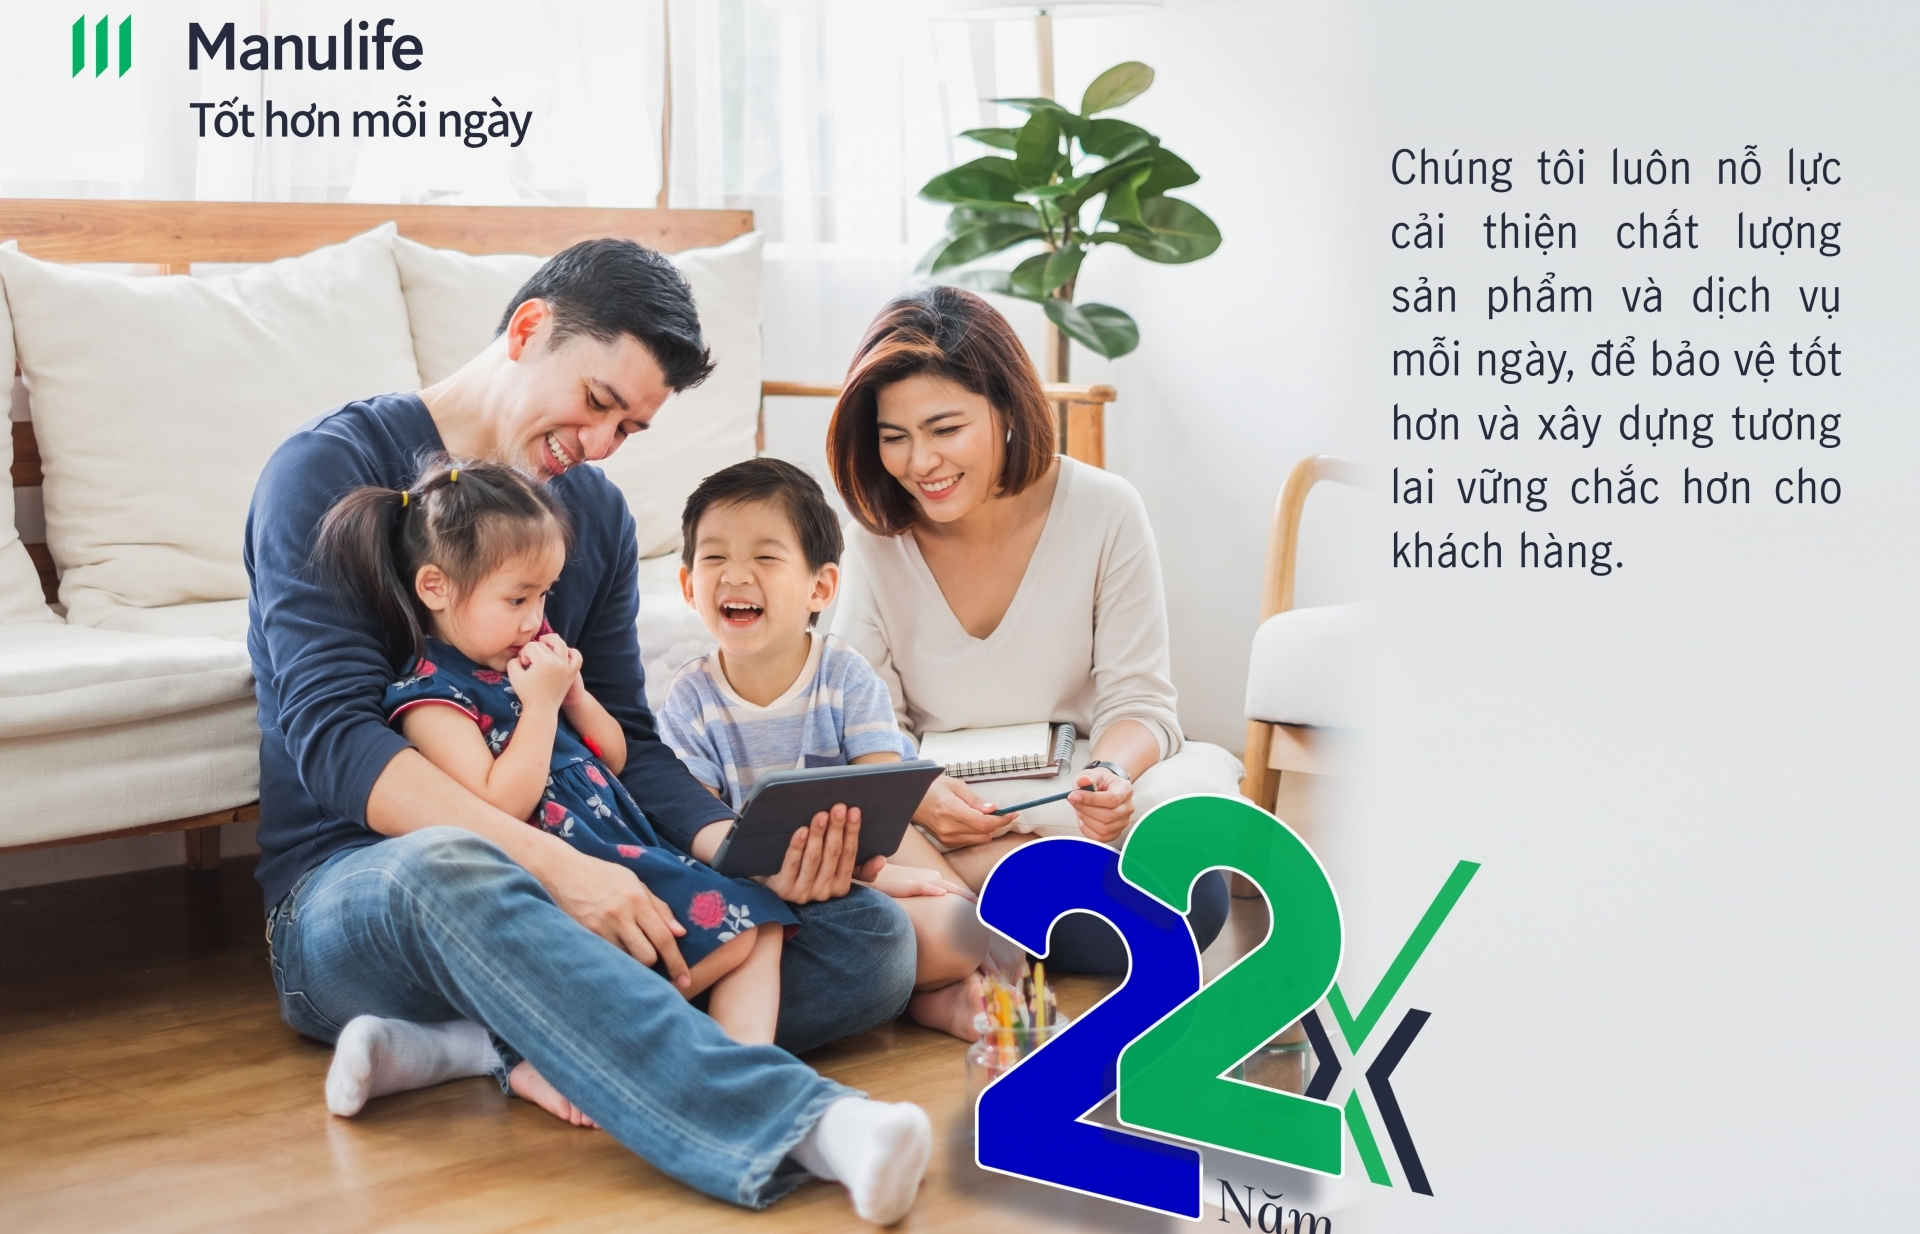 """Manulife Vietnam reaffirms """"Every day better"""" commitment as part of 22nd anniversary"""